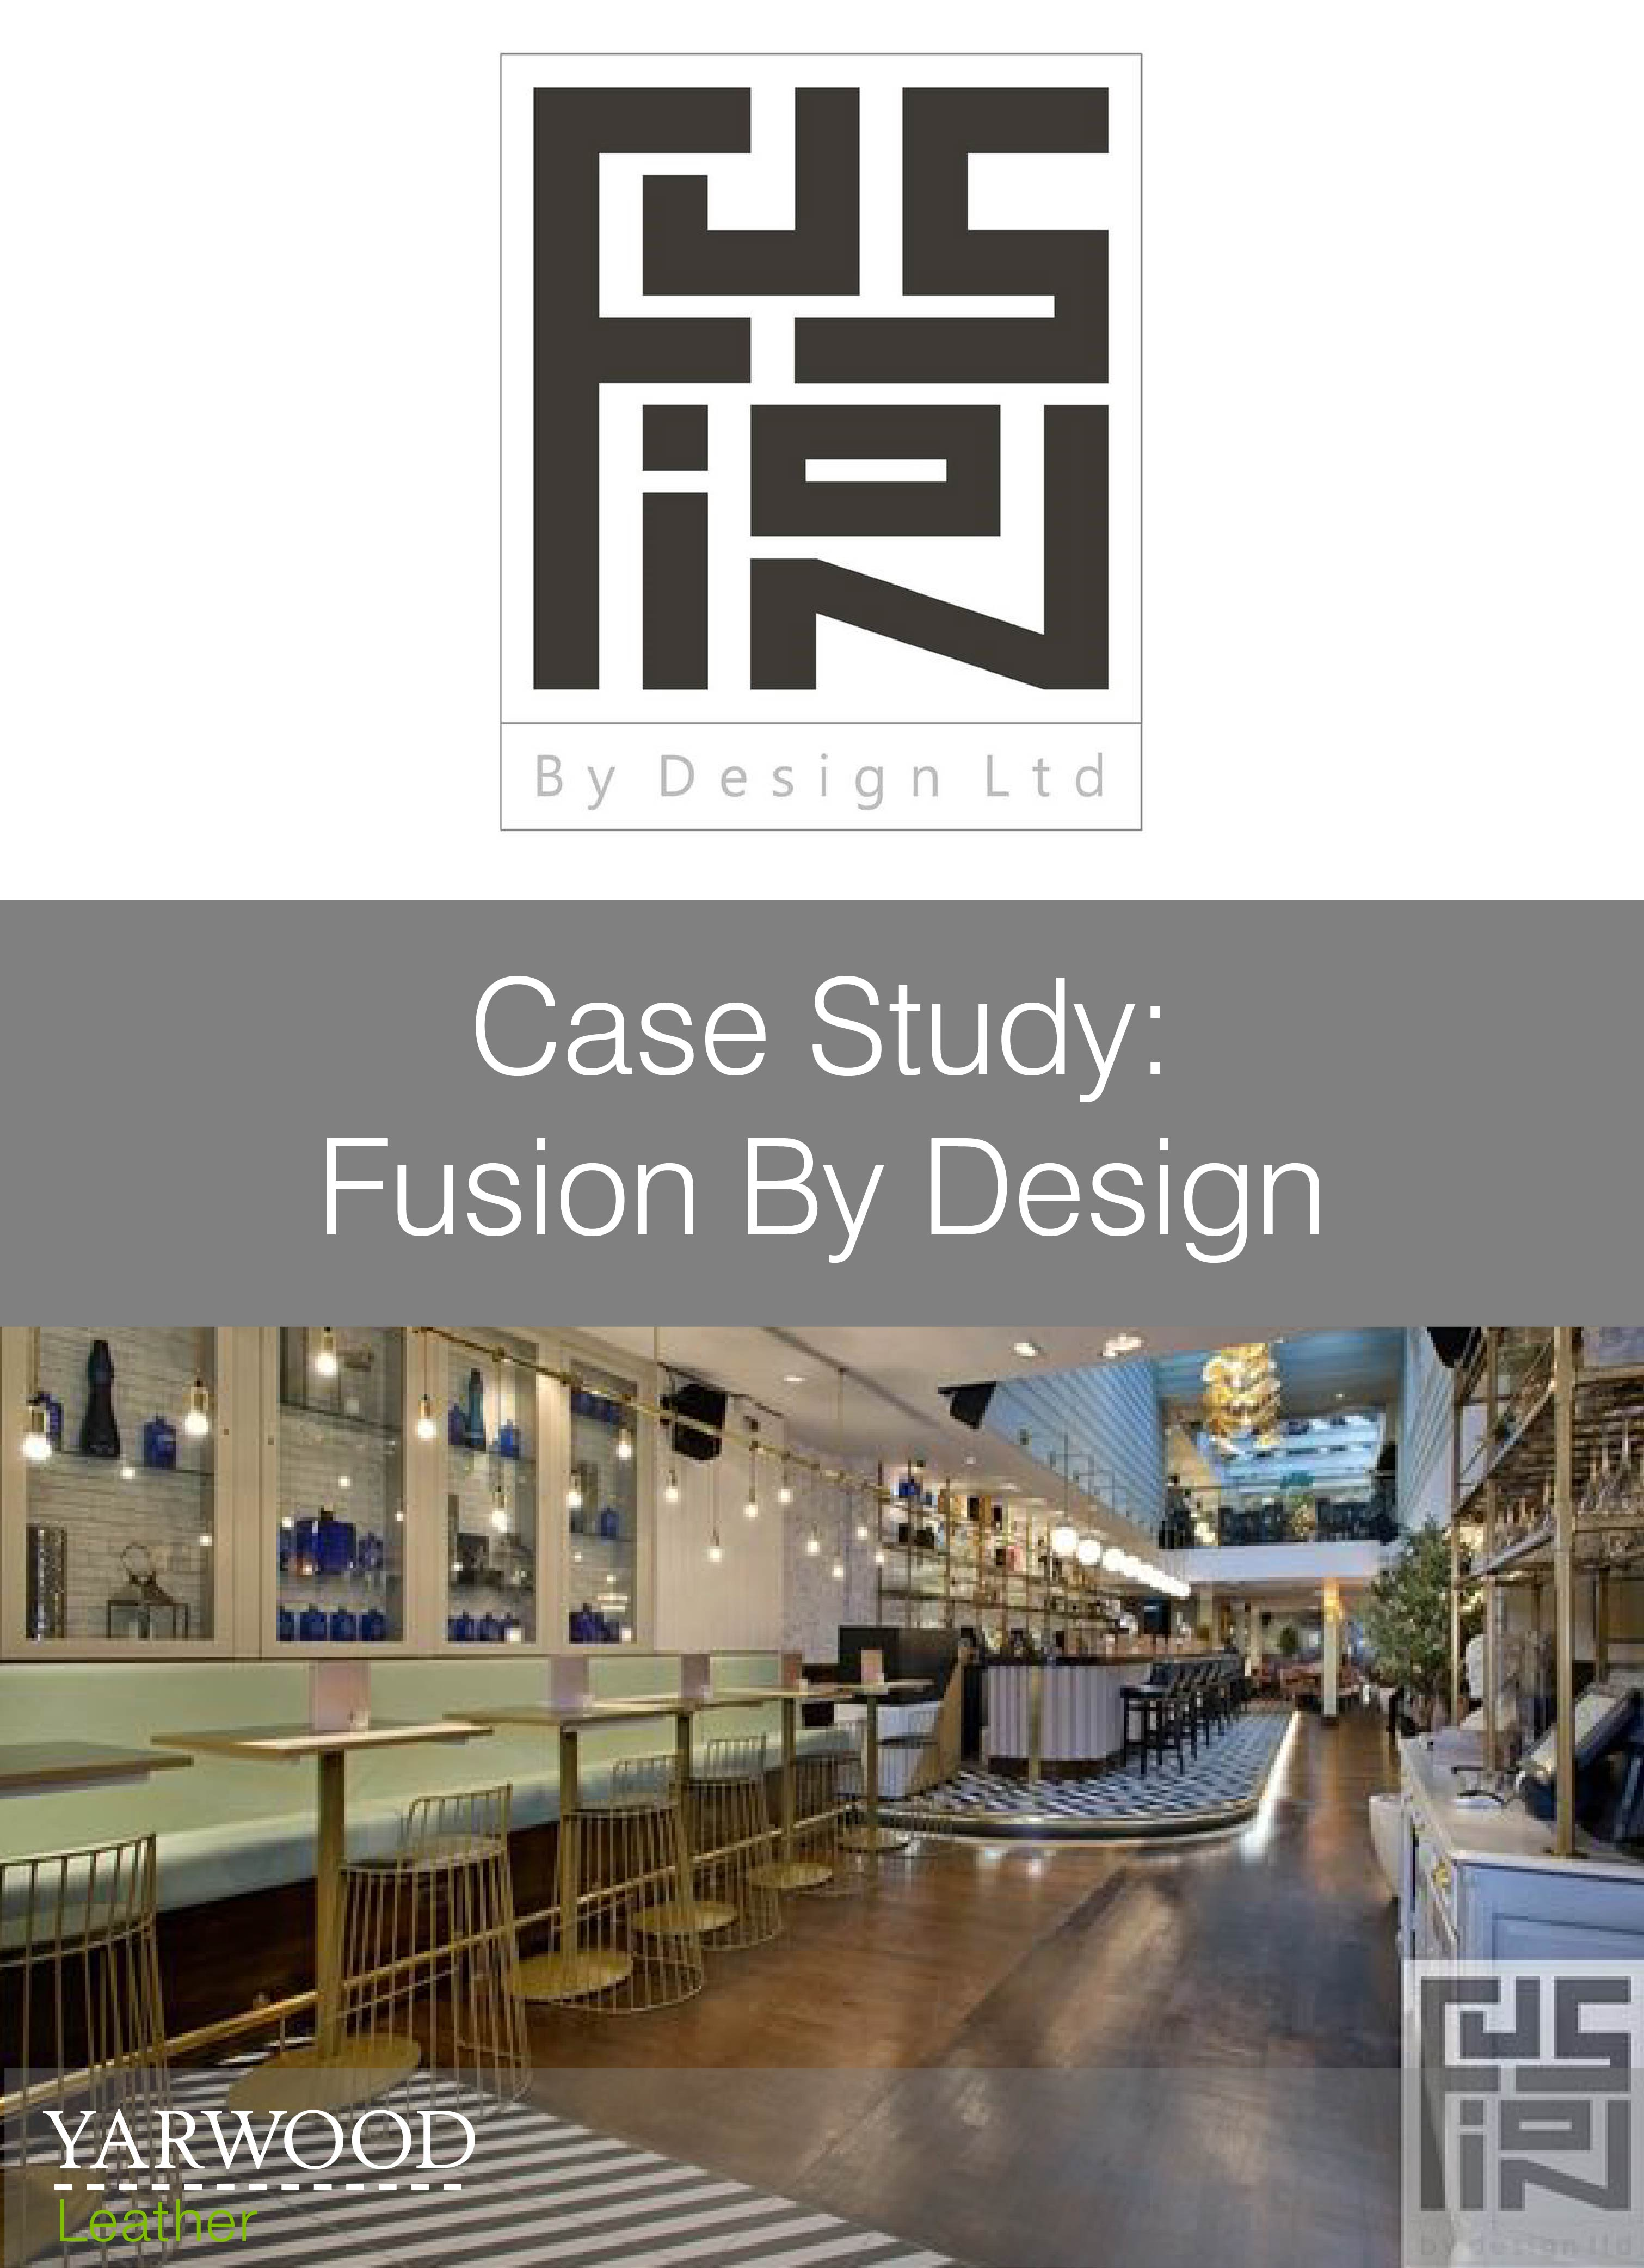 Three floors to enjoy drinks with friends, read about our work with Fusion By Design on The Living Room, Manchester